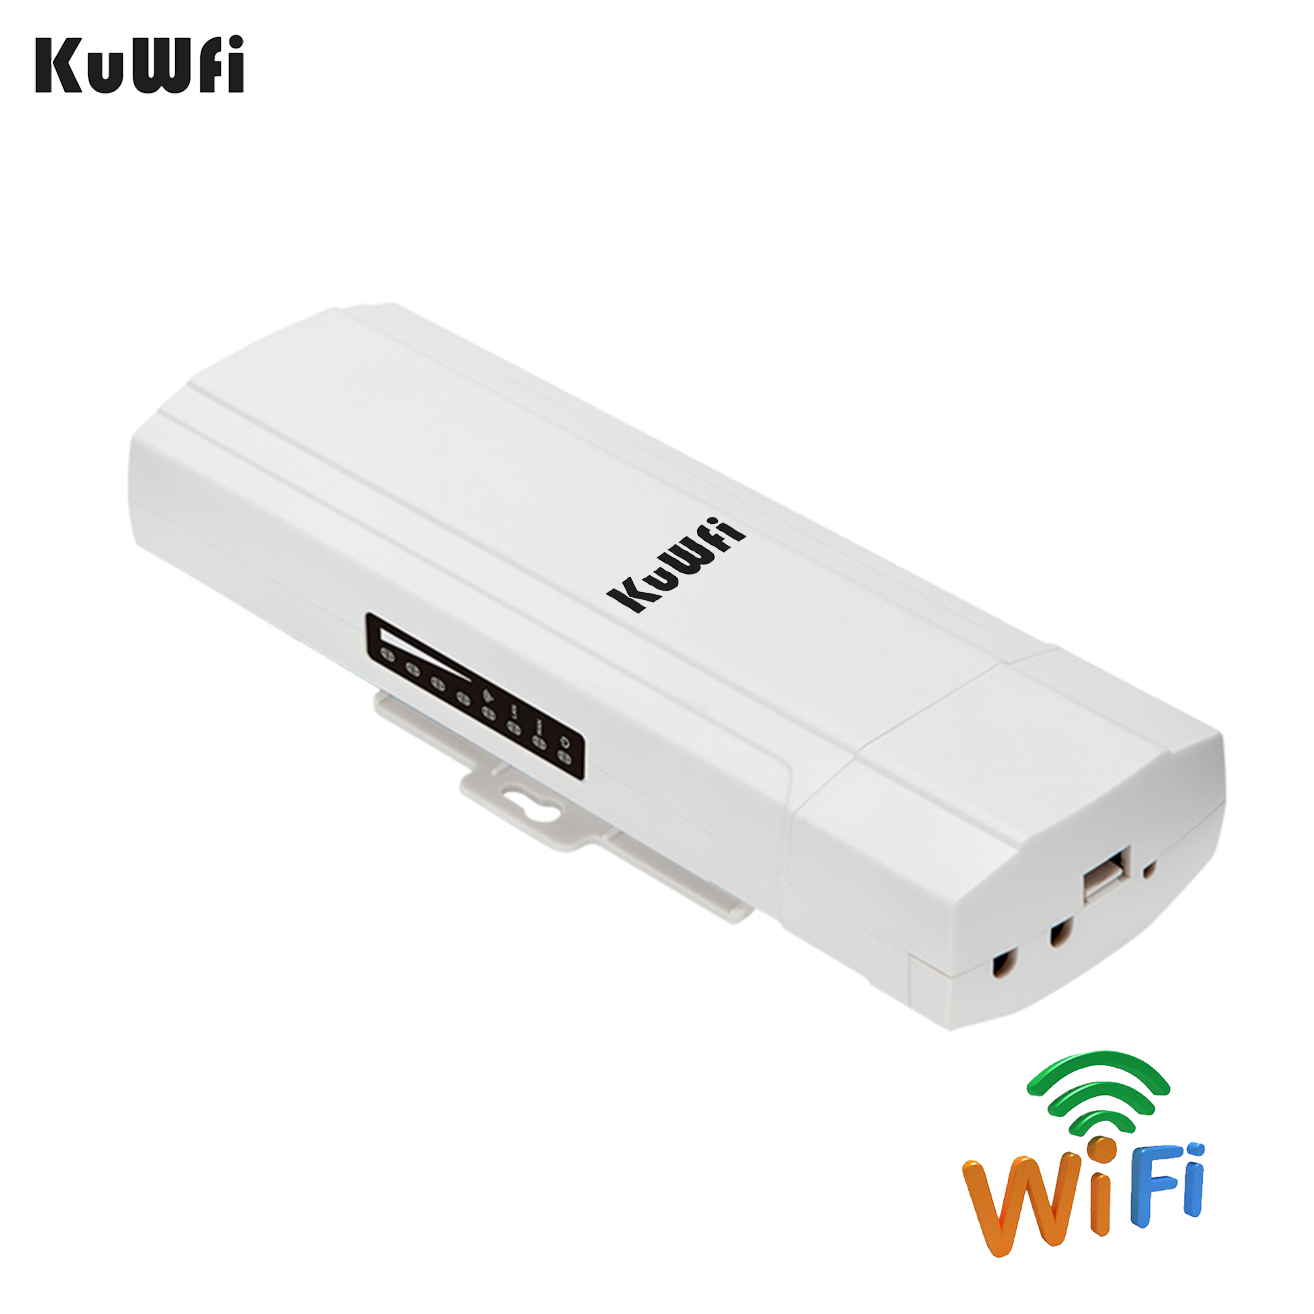 3KM Outdoor 300Mbps Wireless CPE Router High Power 5.8G Wireless Bridge CPE Amplifier Wifi Repeater AP Router With 24V POE